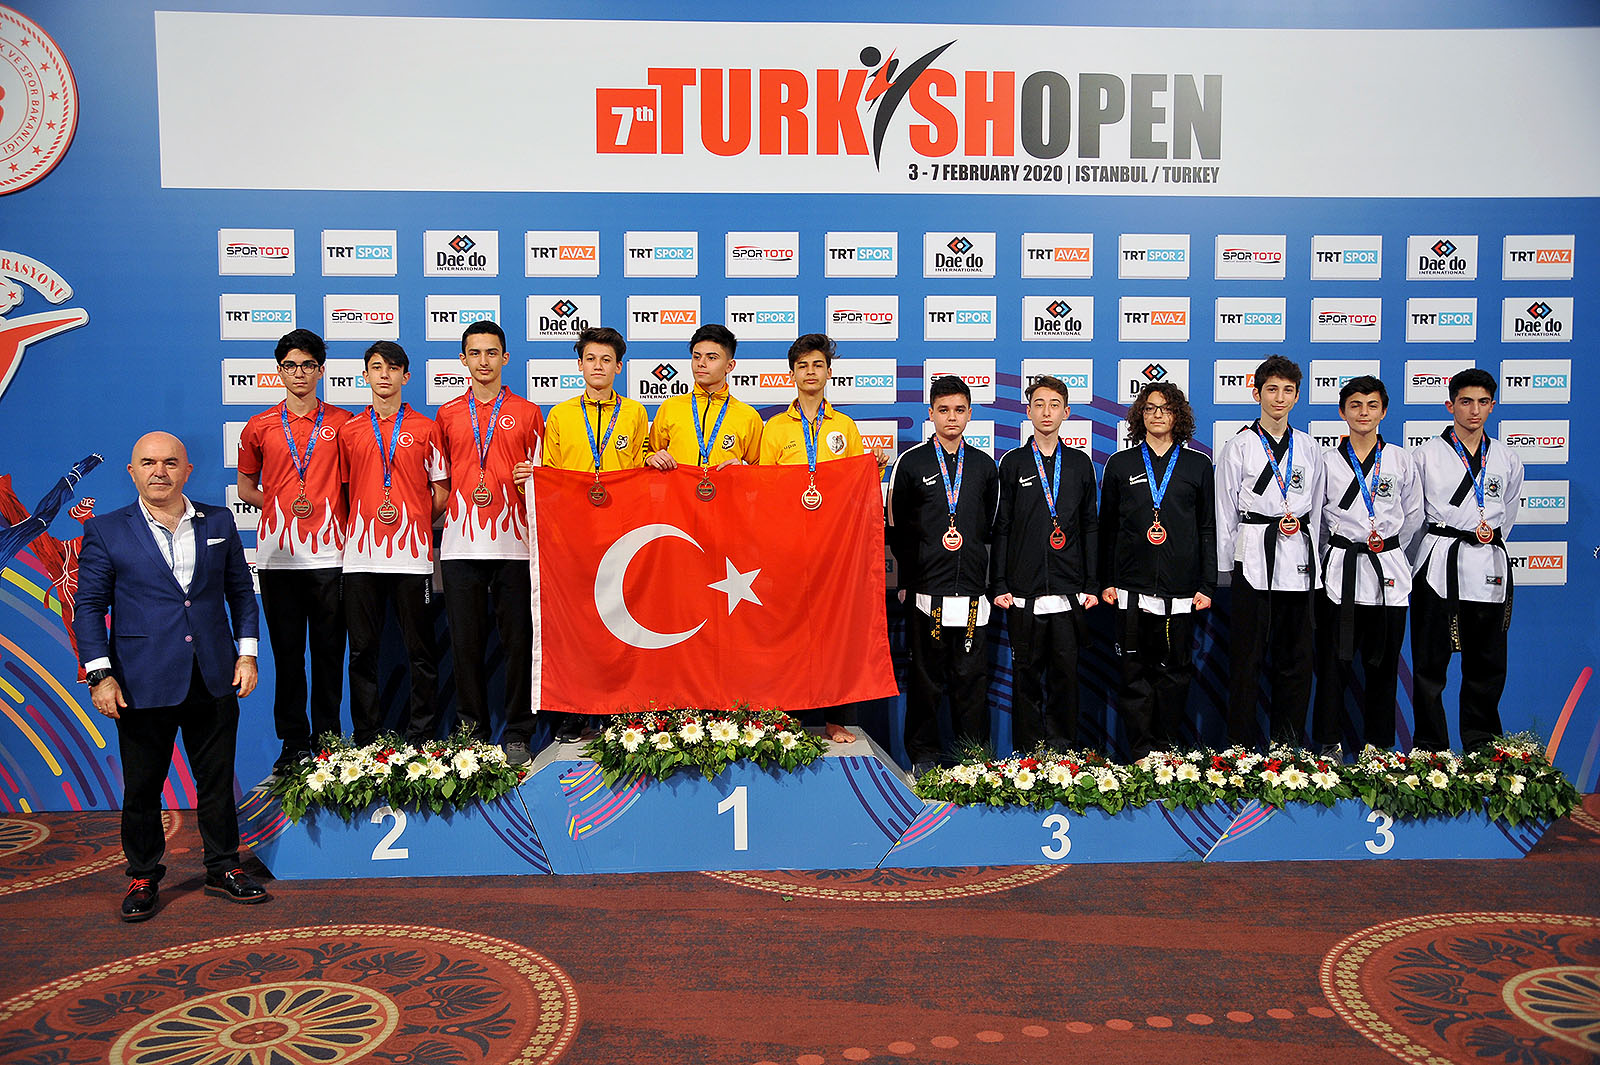 PoomsaePodioH_MasTKD_7th-Turkish-Open-Taekwondo-Tournament